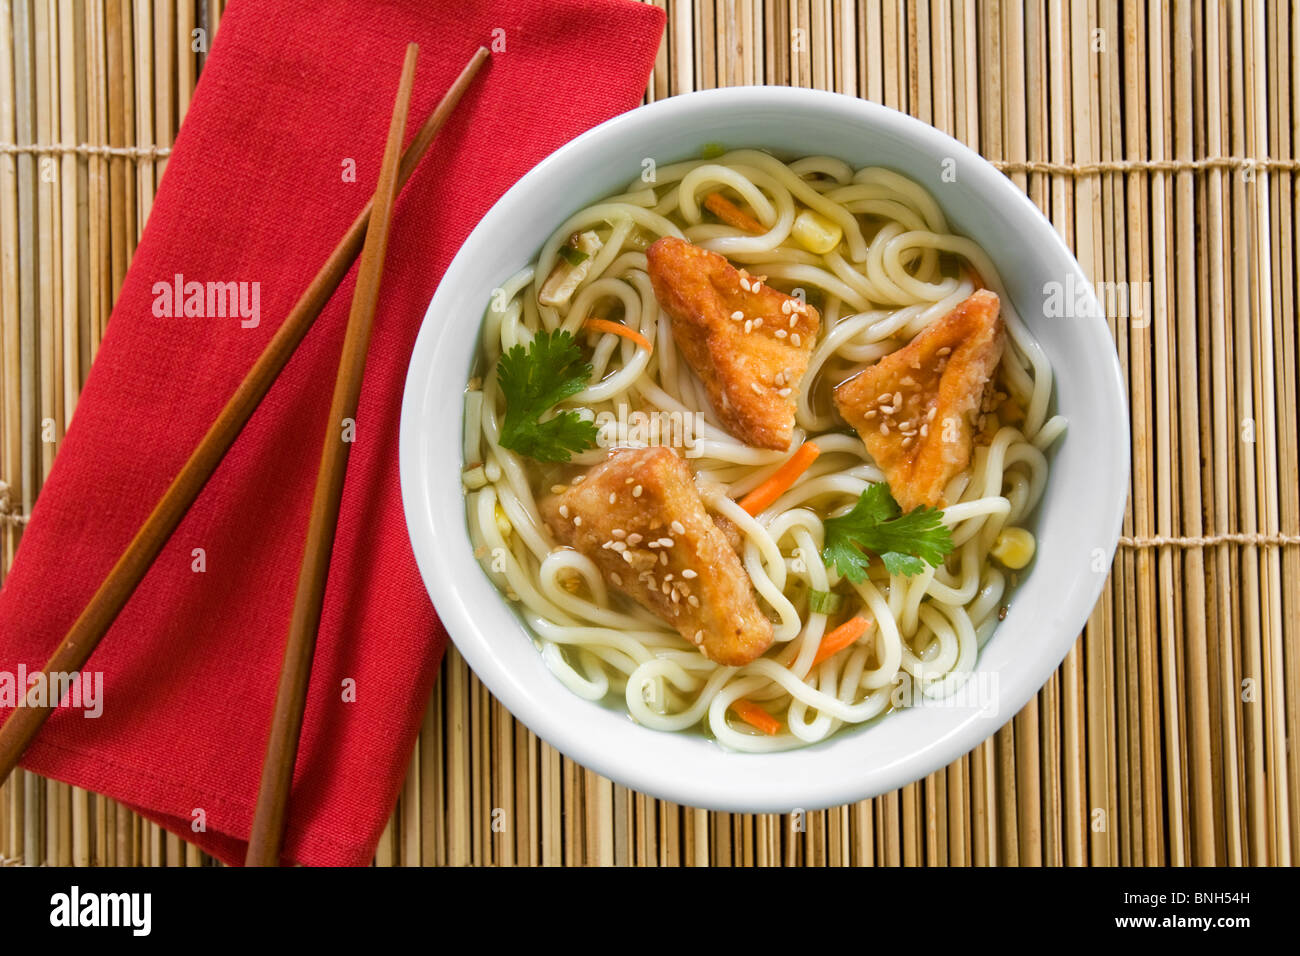 Udon noodle soup with fried tofu and sesame seeds on top Stock Photo